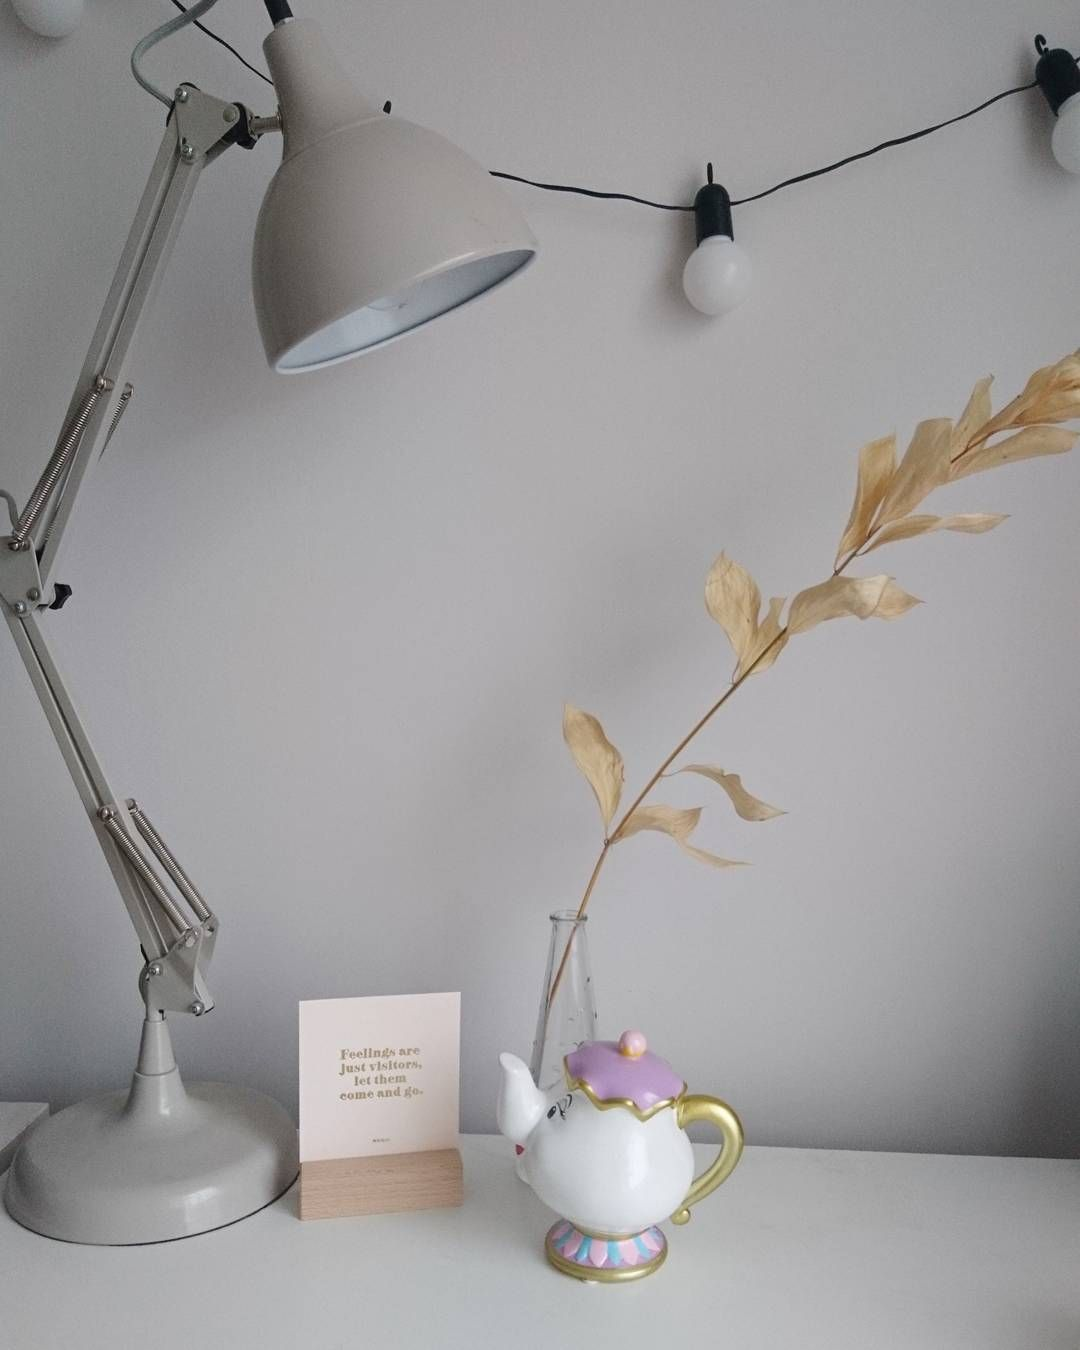 Me and Mrs. Potts just wanted to say thanks for all your tips for pimping out my desk space last week. Especially @juliancharlesuk and your #blankcanvas advice. I've added a lovely @kikki.k motivational print and hung some @festivelightsltd festoon lights so far. Got lots on order too! Can't wait to share once they arrive.   #officemakeover #officegoals #styleonmytable #lovemyrenovation #nestandflourish #aquietstyle #interiors #decoration #renovation #design #home #warmth #renovationlife…